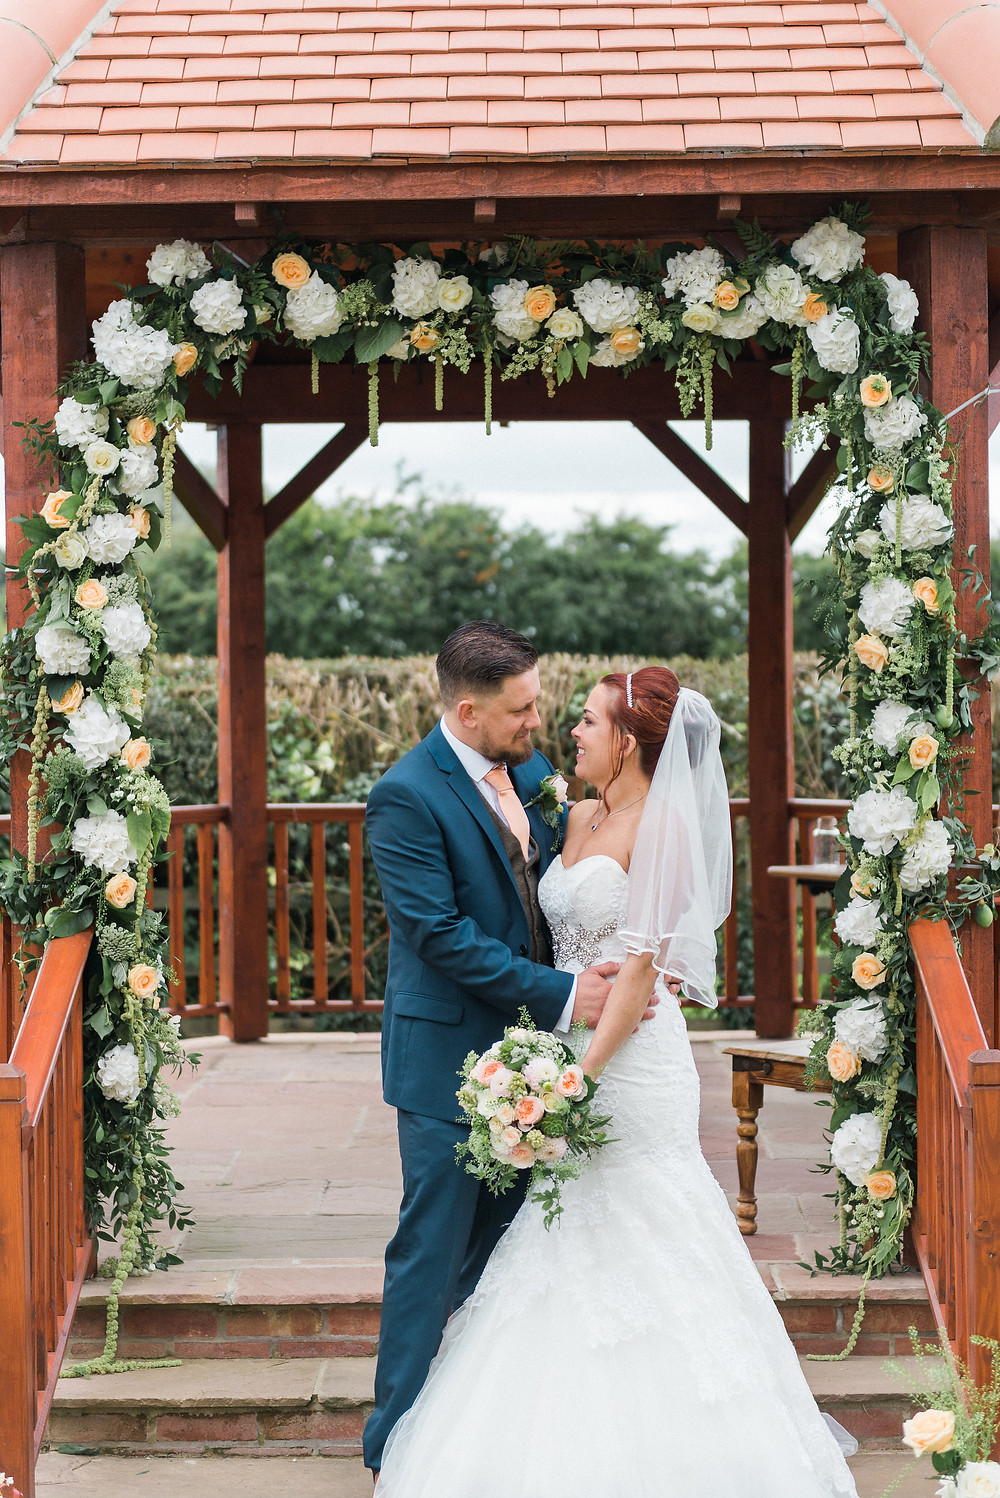 Rachel's Floral arch soon to be featured on Whimsical Wedding blog